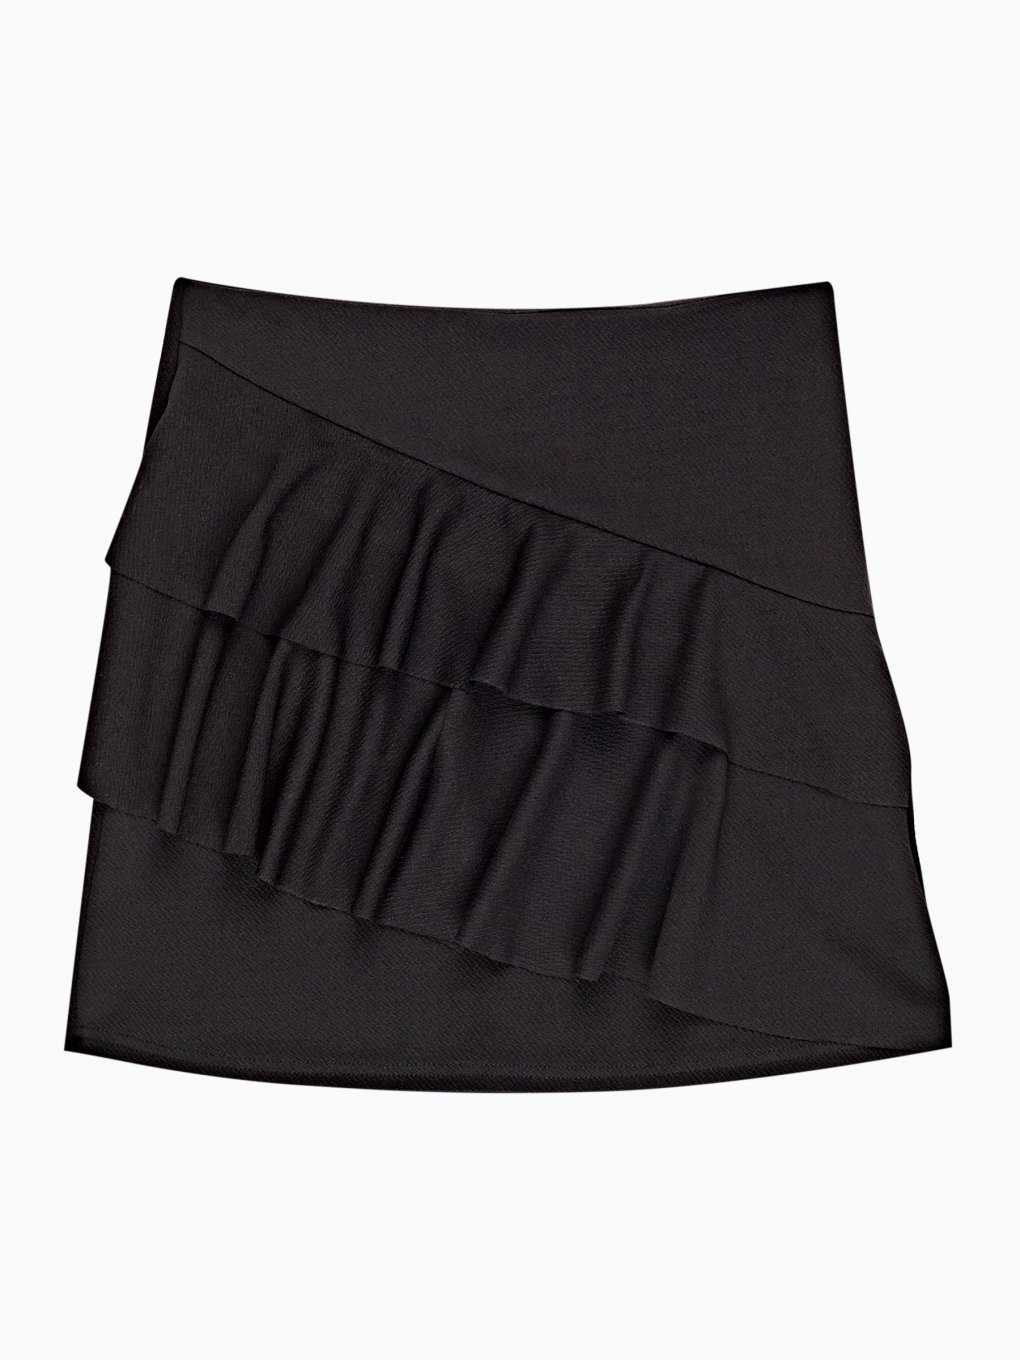 Mini skirt with ruffles